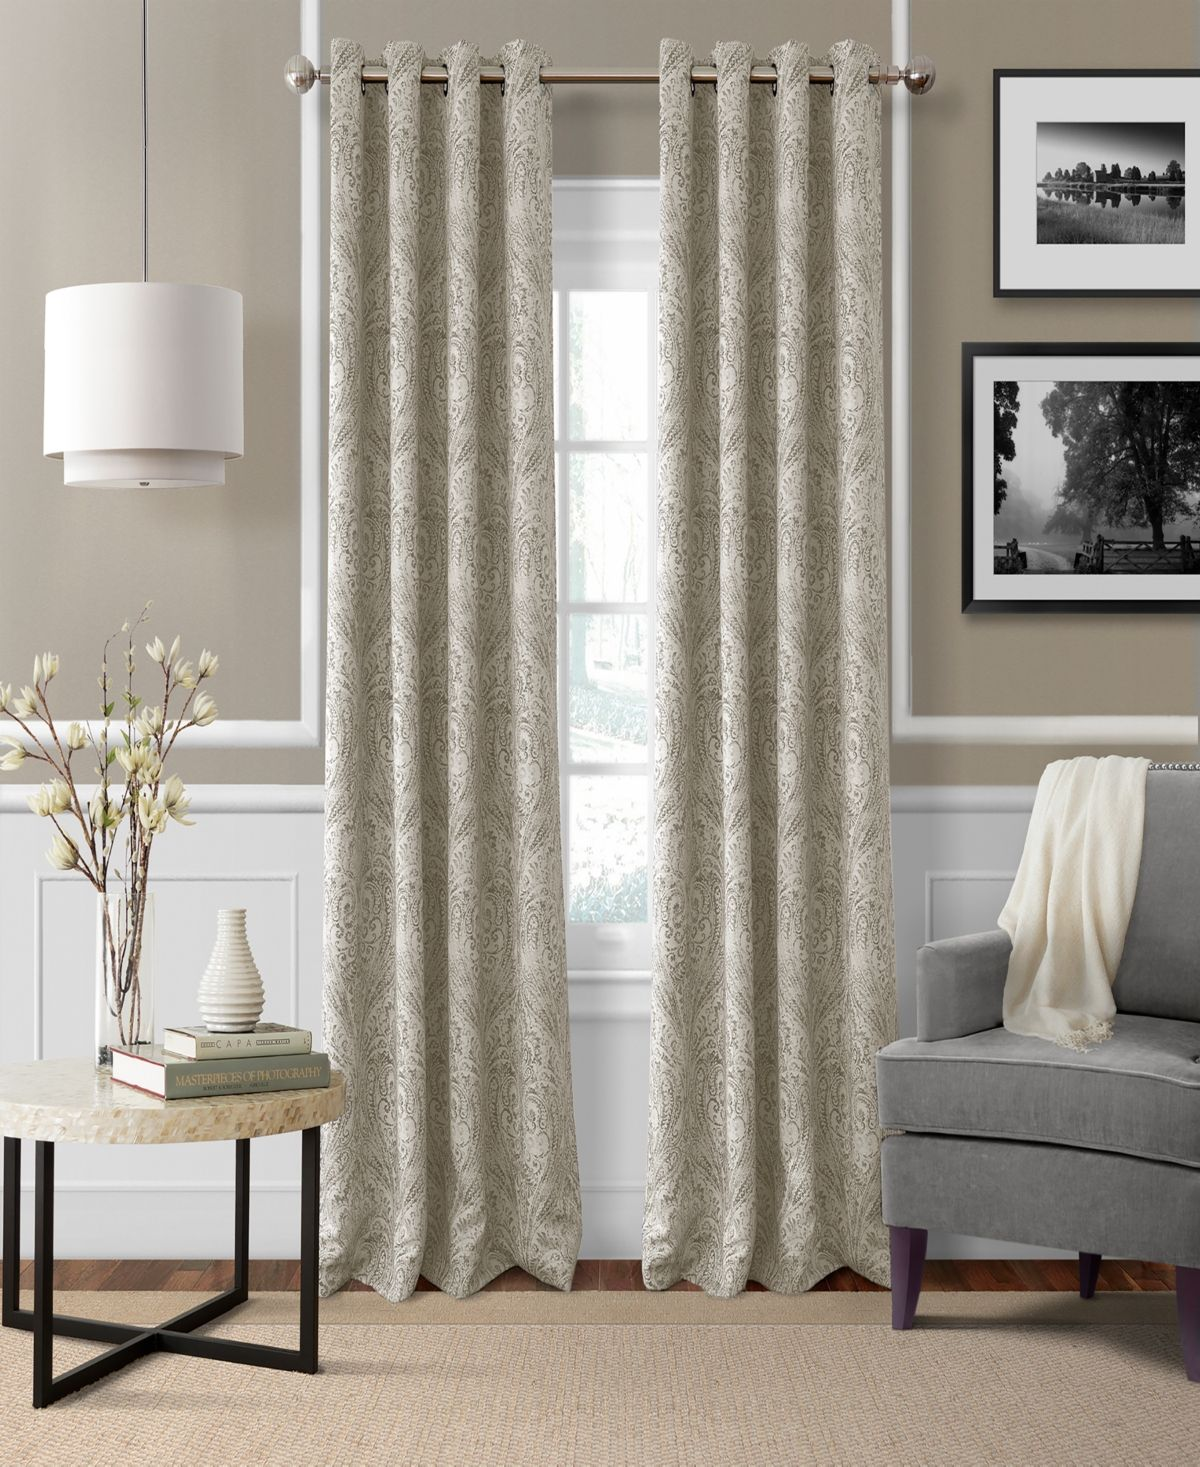 Elrene Julianne Paisley 52 X 95 Blackout Curtain Panel Reviews